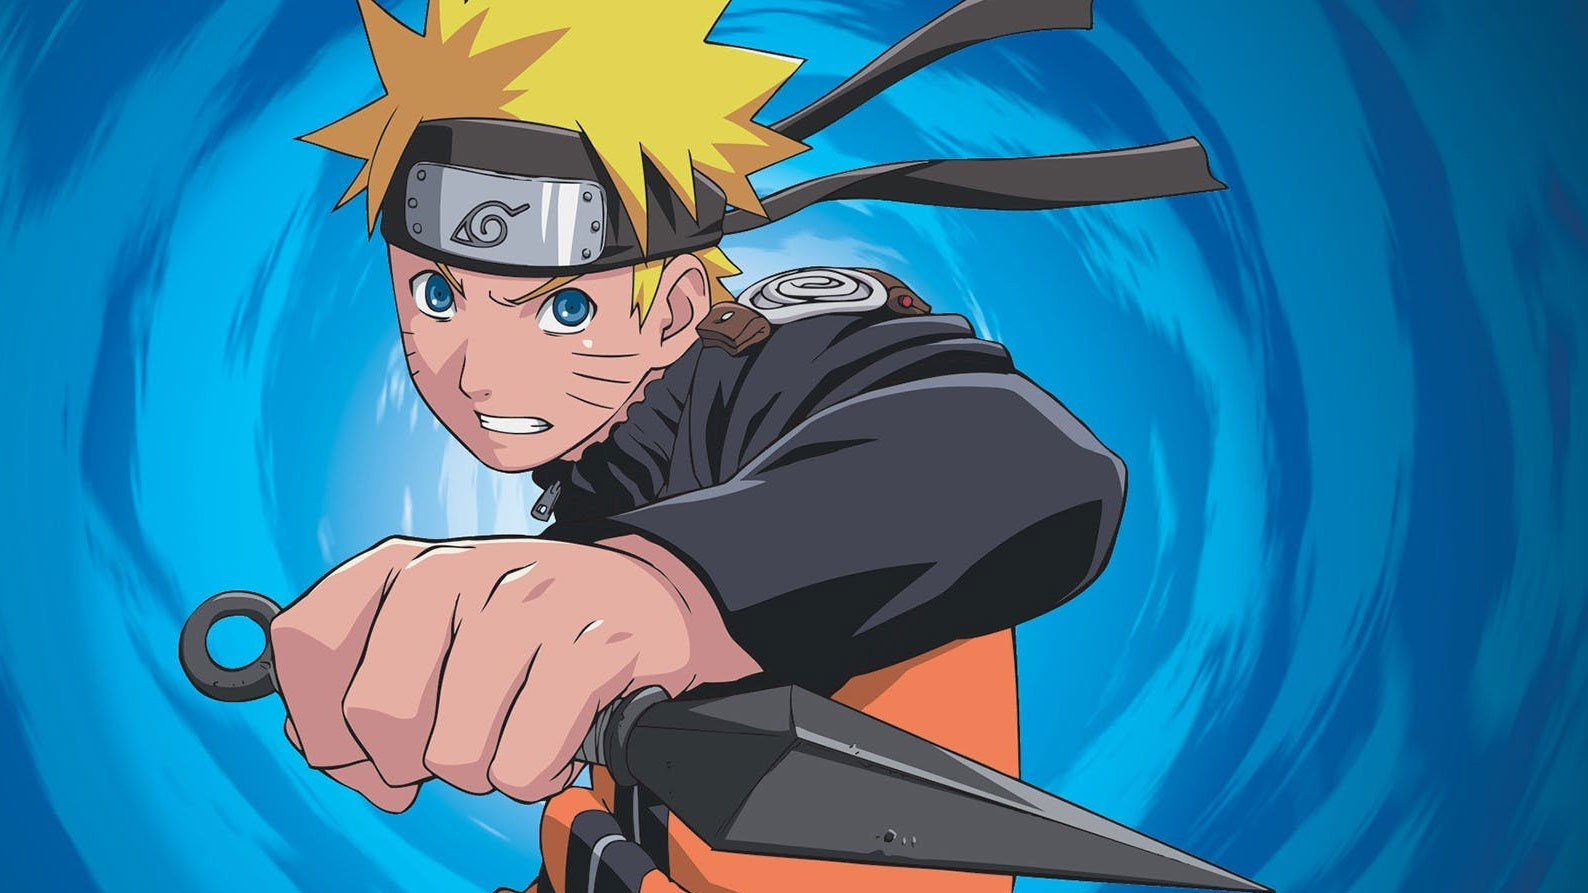 Personnages - Naruto